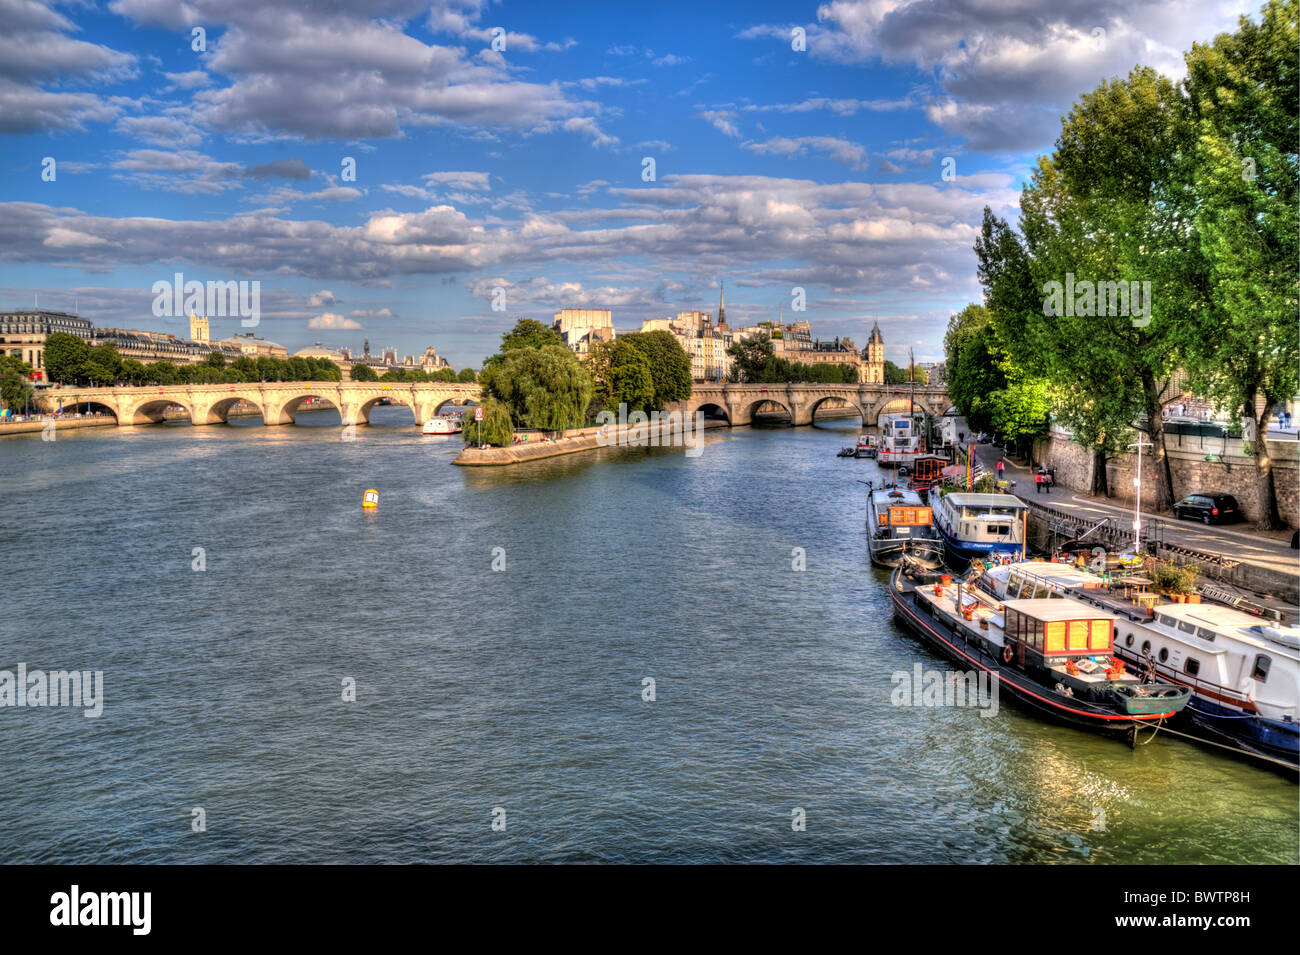 River Seine Paris France Stock Photo